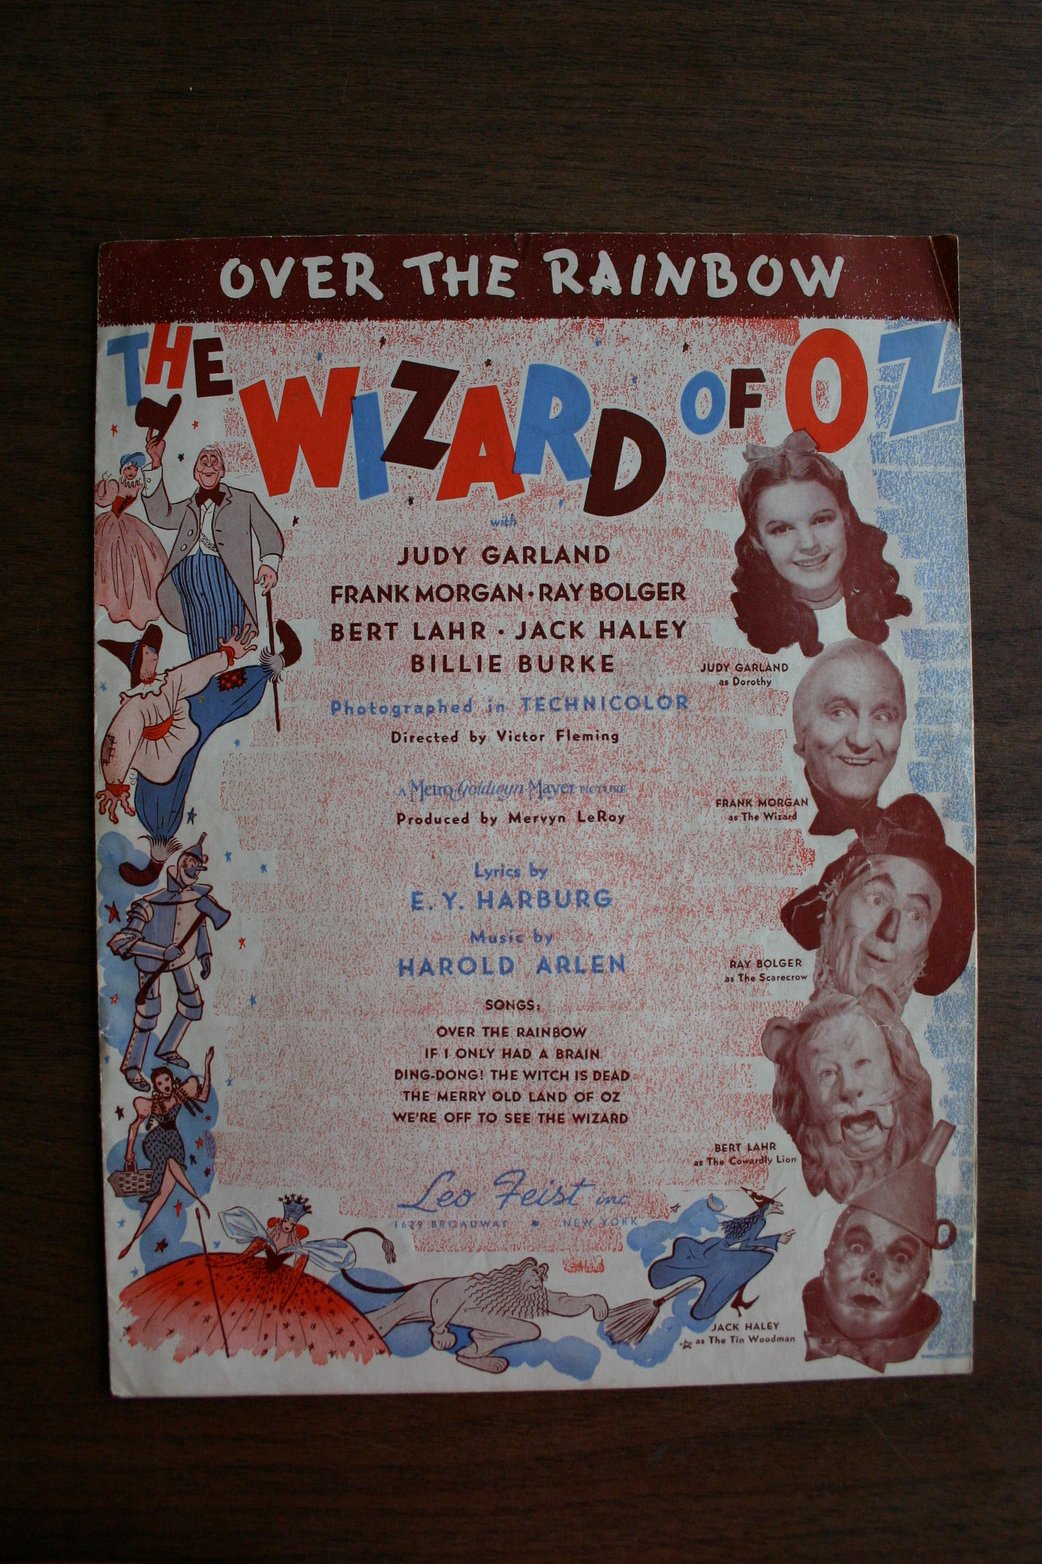 Over the Rainbow -- The Wizard of Oz Sheetmusic